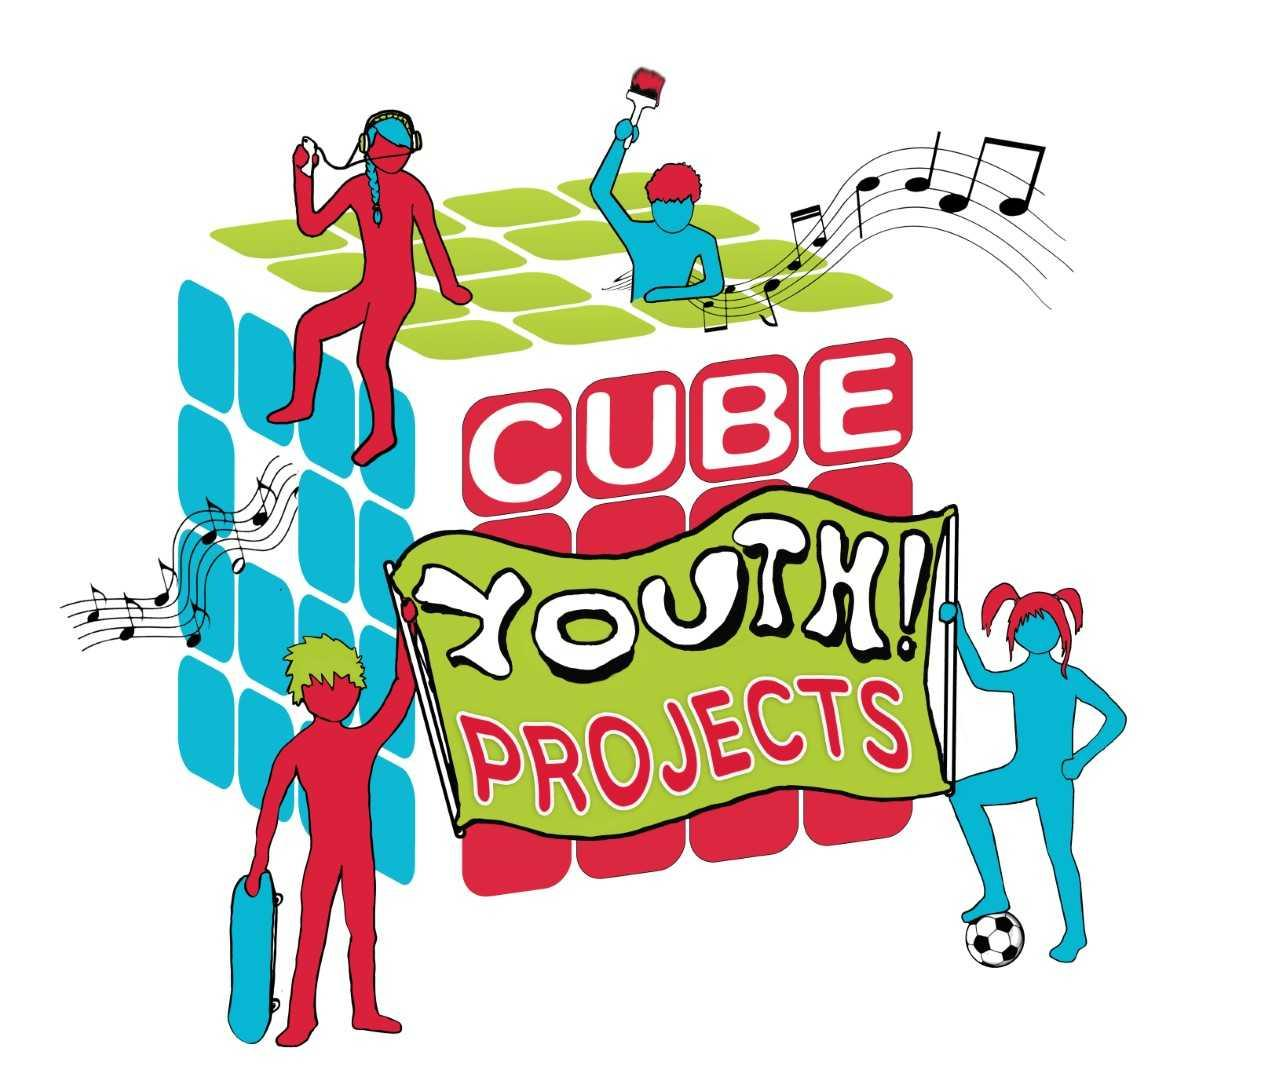 Malvern cube projects